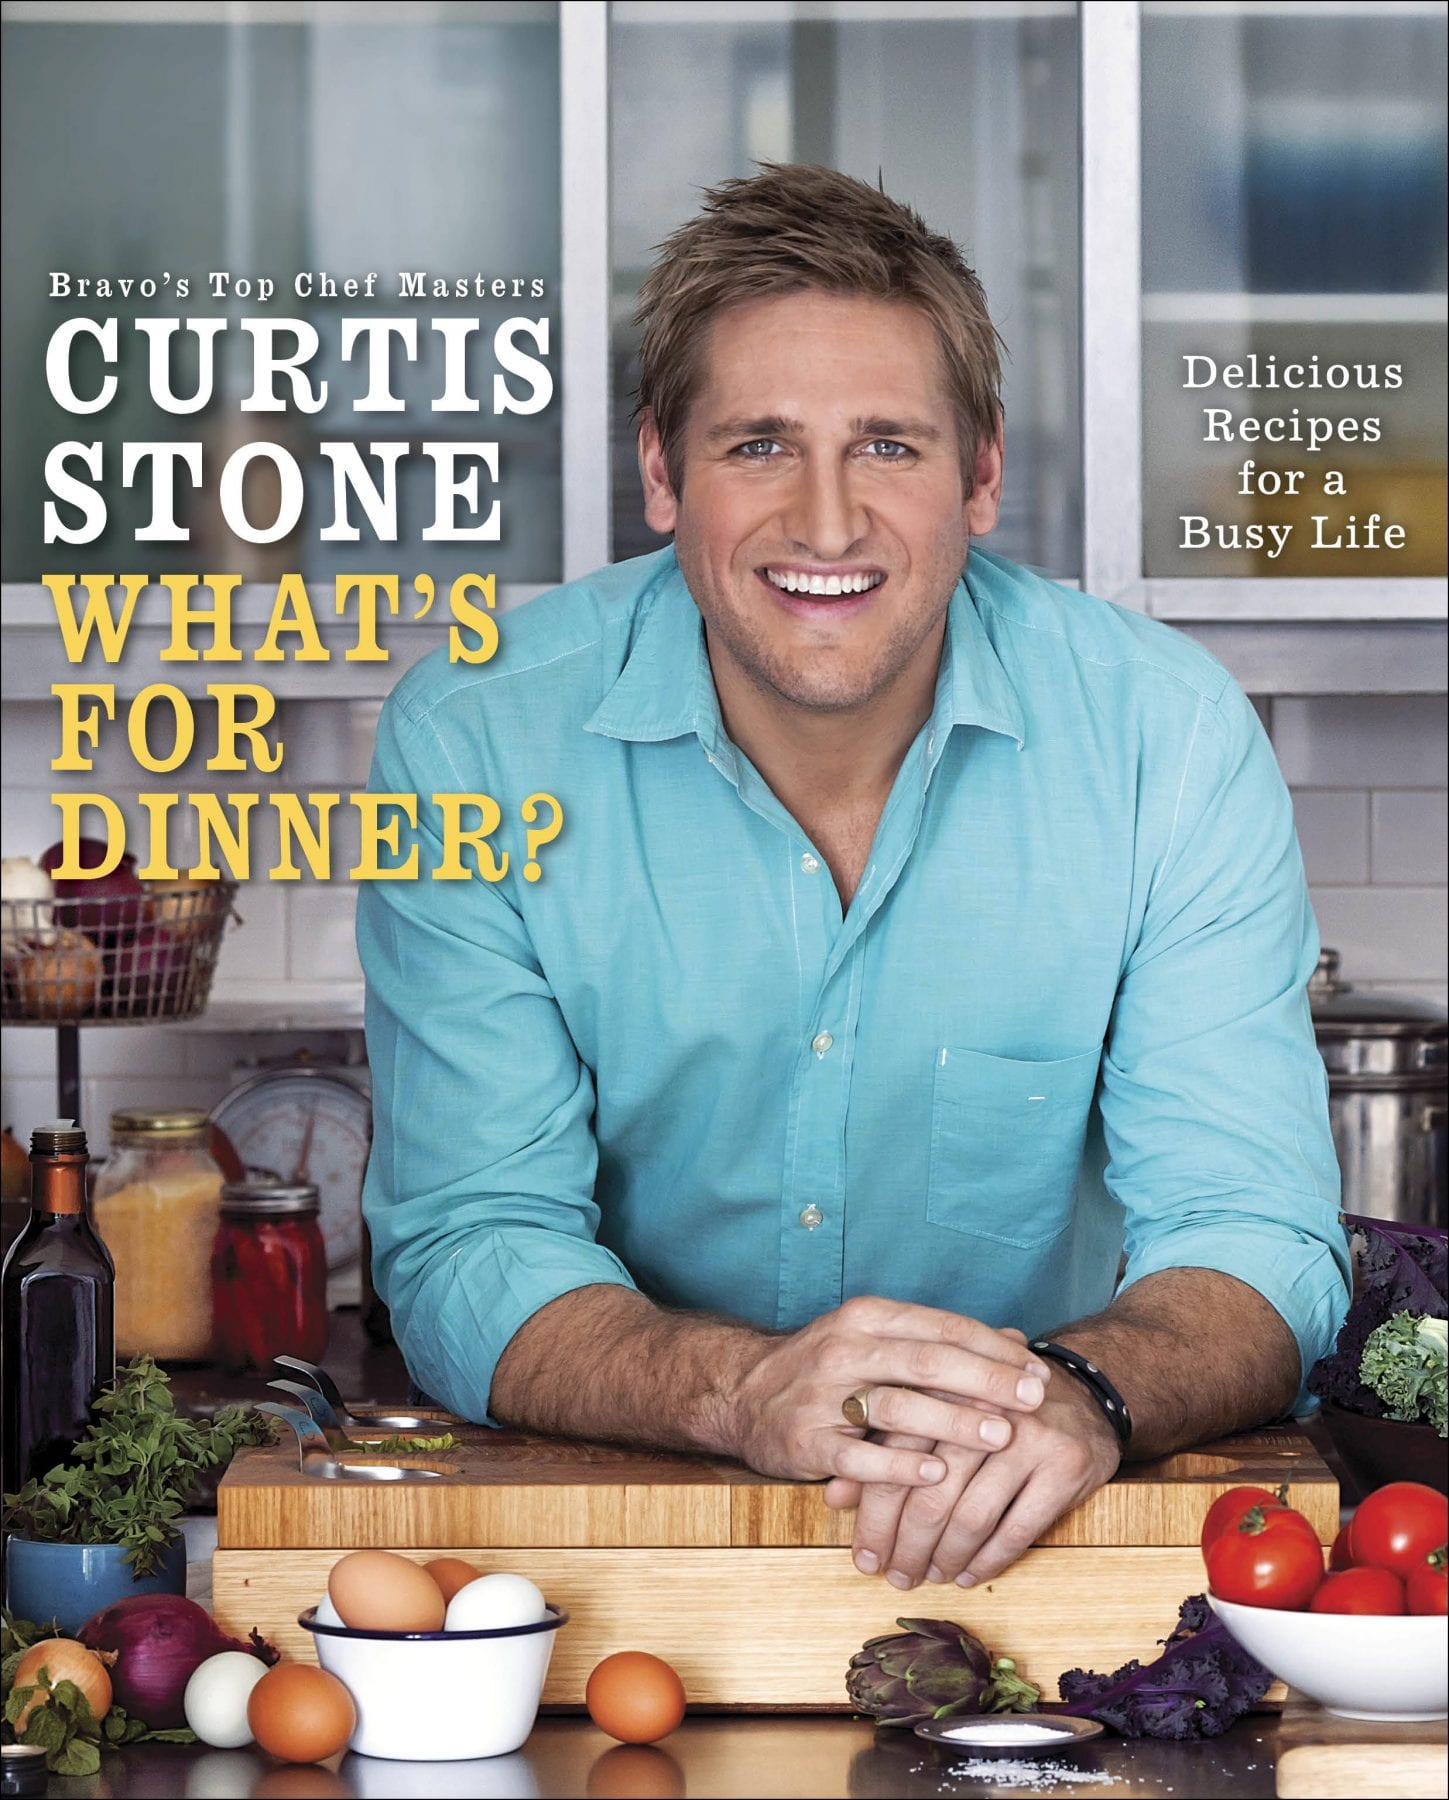 curtis stone frypans